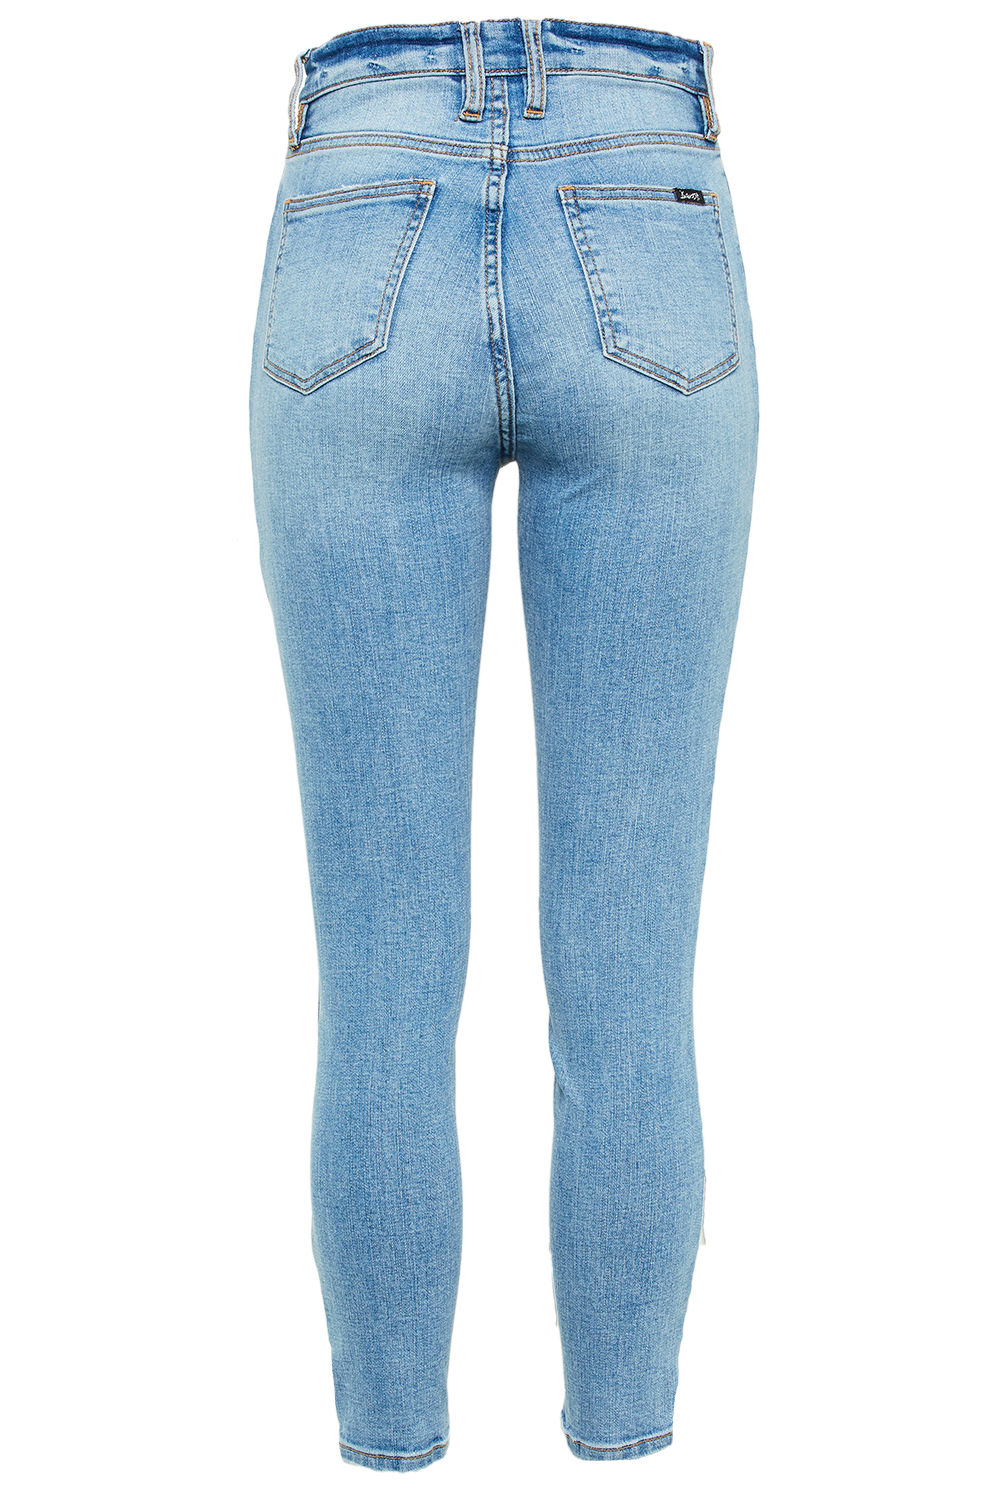 KHLOE HI CROP JEAN in colour NIGHTSHADOW BLUE